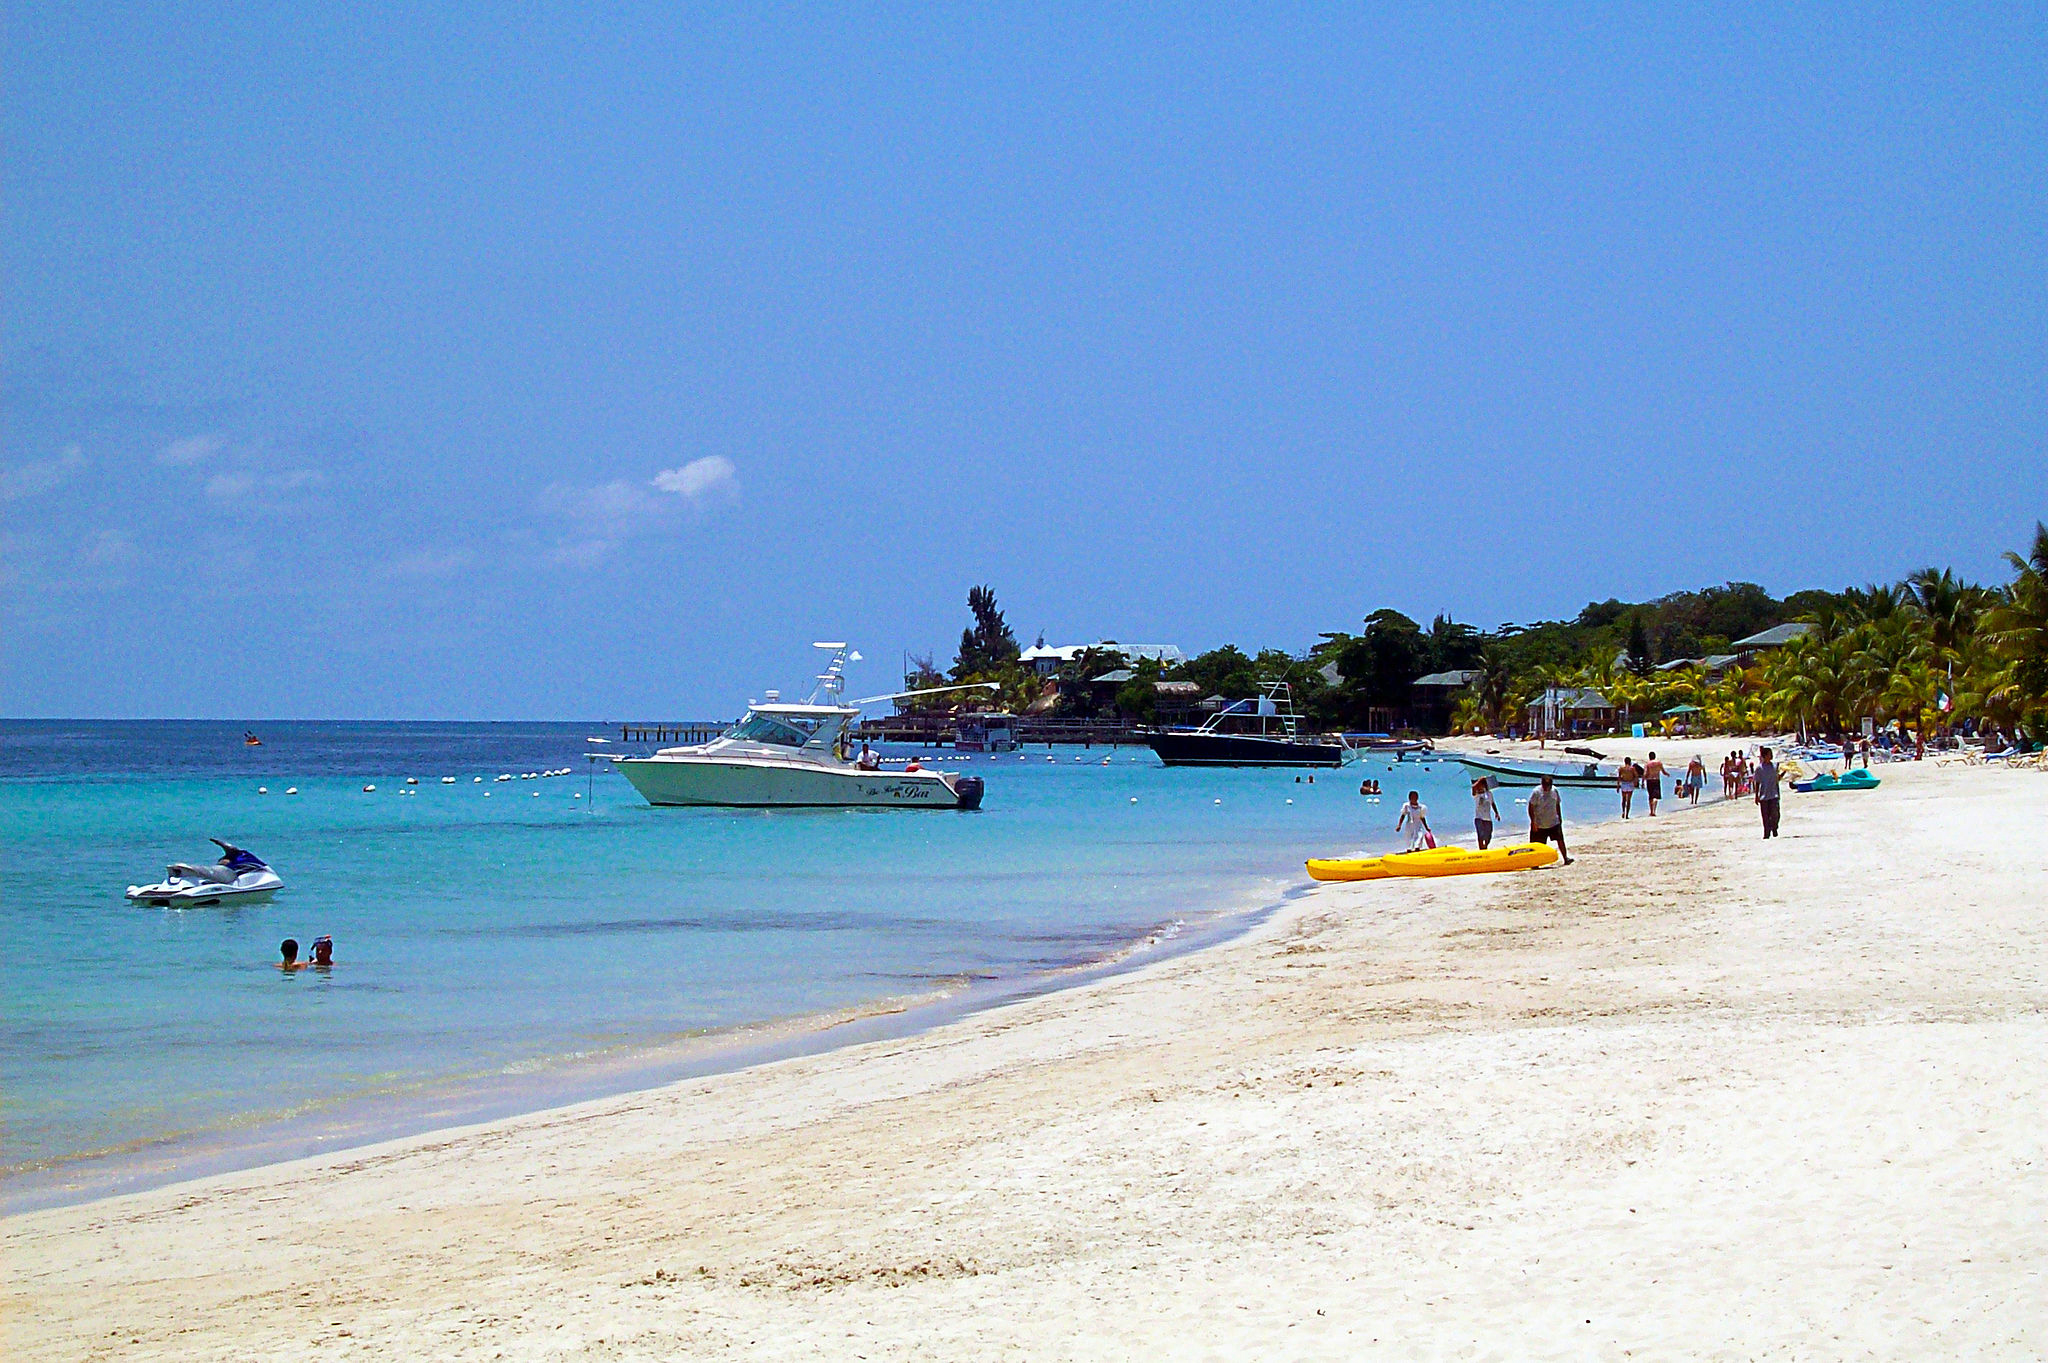 2048px-West_Bay_Beach_-Roatan_-Honduras-23May2009-g.jpg